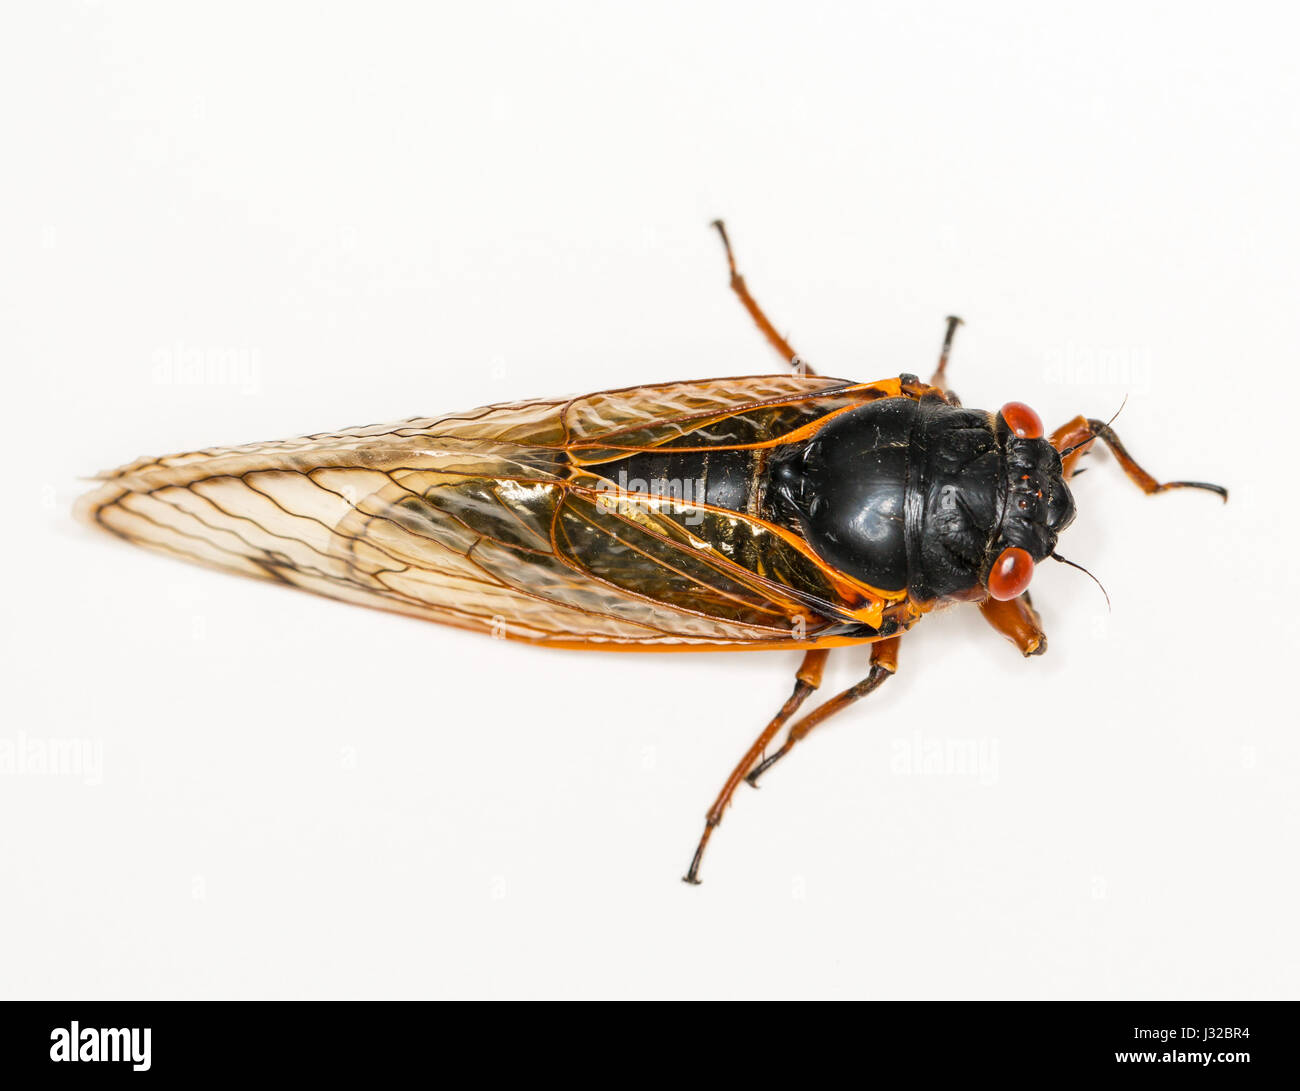 Cicada close up from Brood II in 2013 in Virginia. Detailed macro image against white background - Stock Image